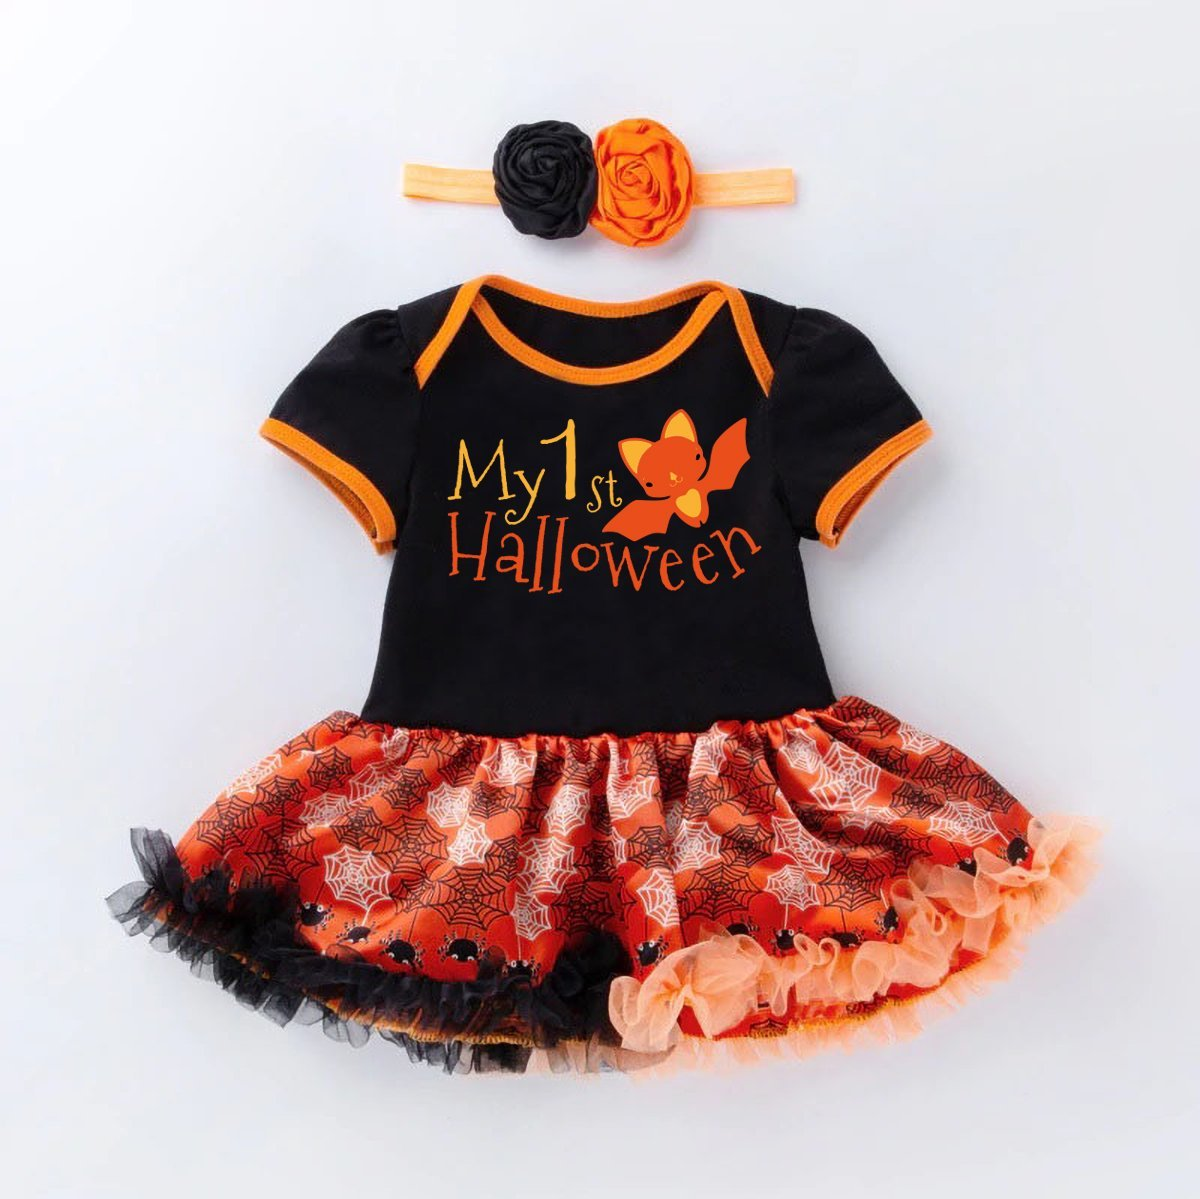 Vivienne's Exclusive Design My 1st Halloween